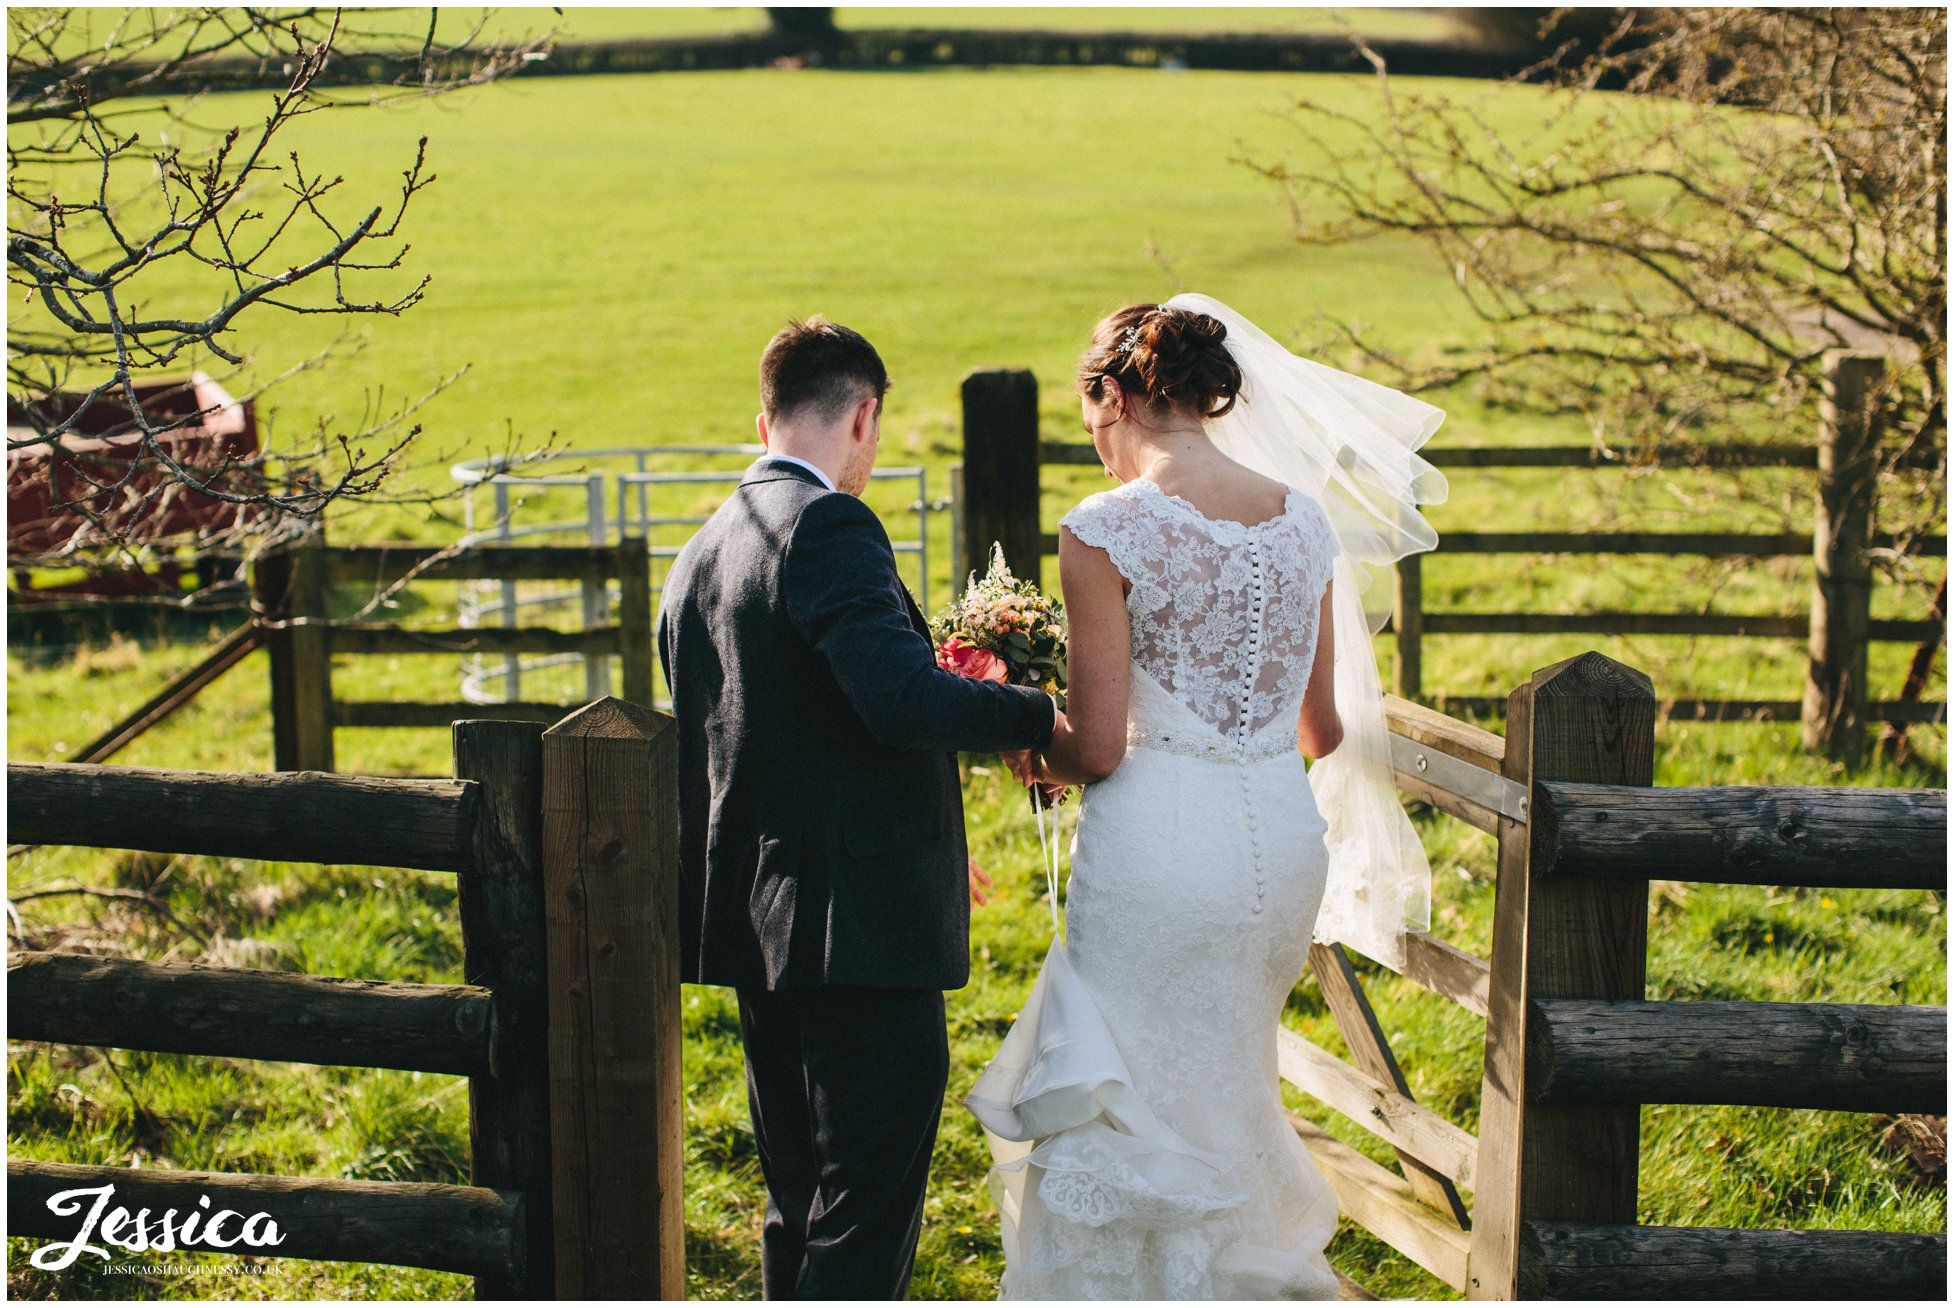 groom helps his bride through wooden gate on their wedding day - north wales wedding photographer